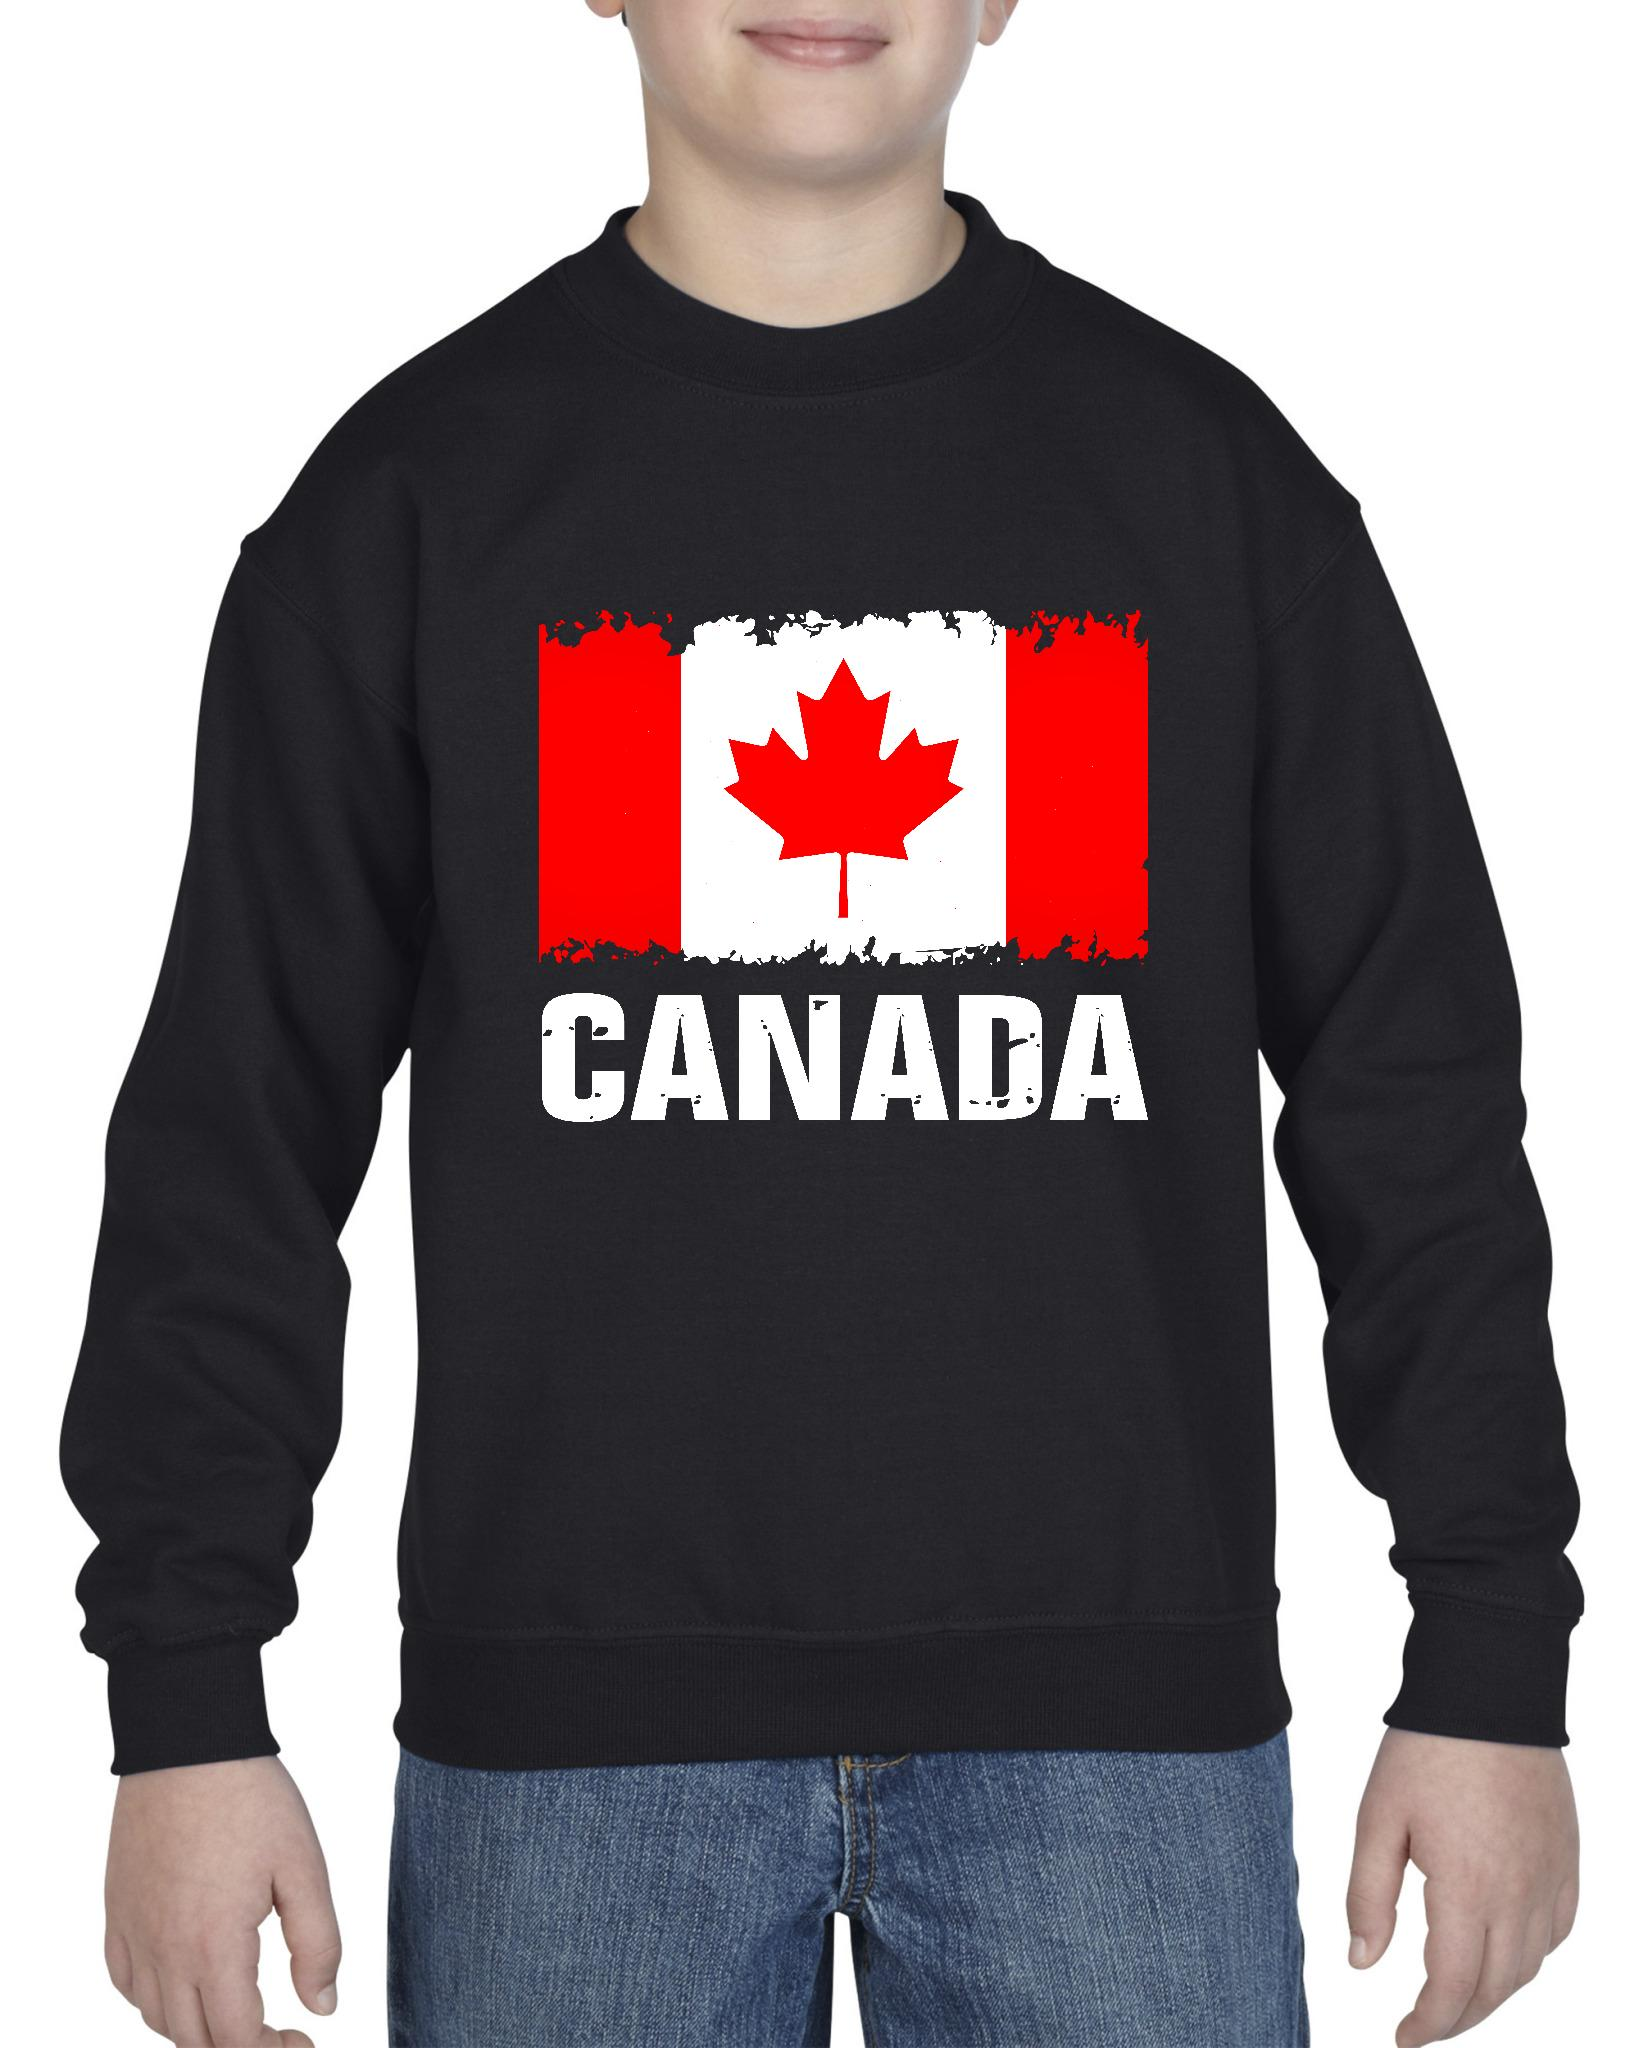 Canada Flag Unisex Youth Crewneck Sweatshirt